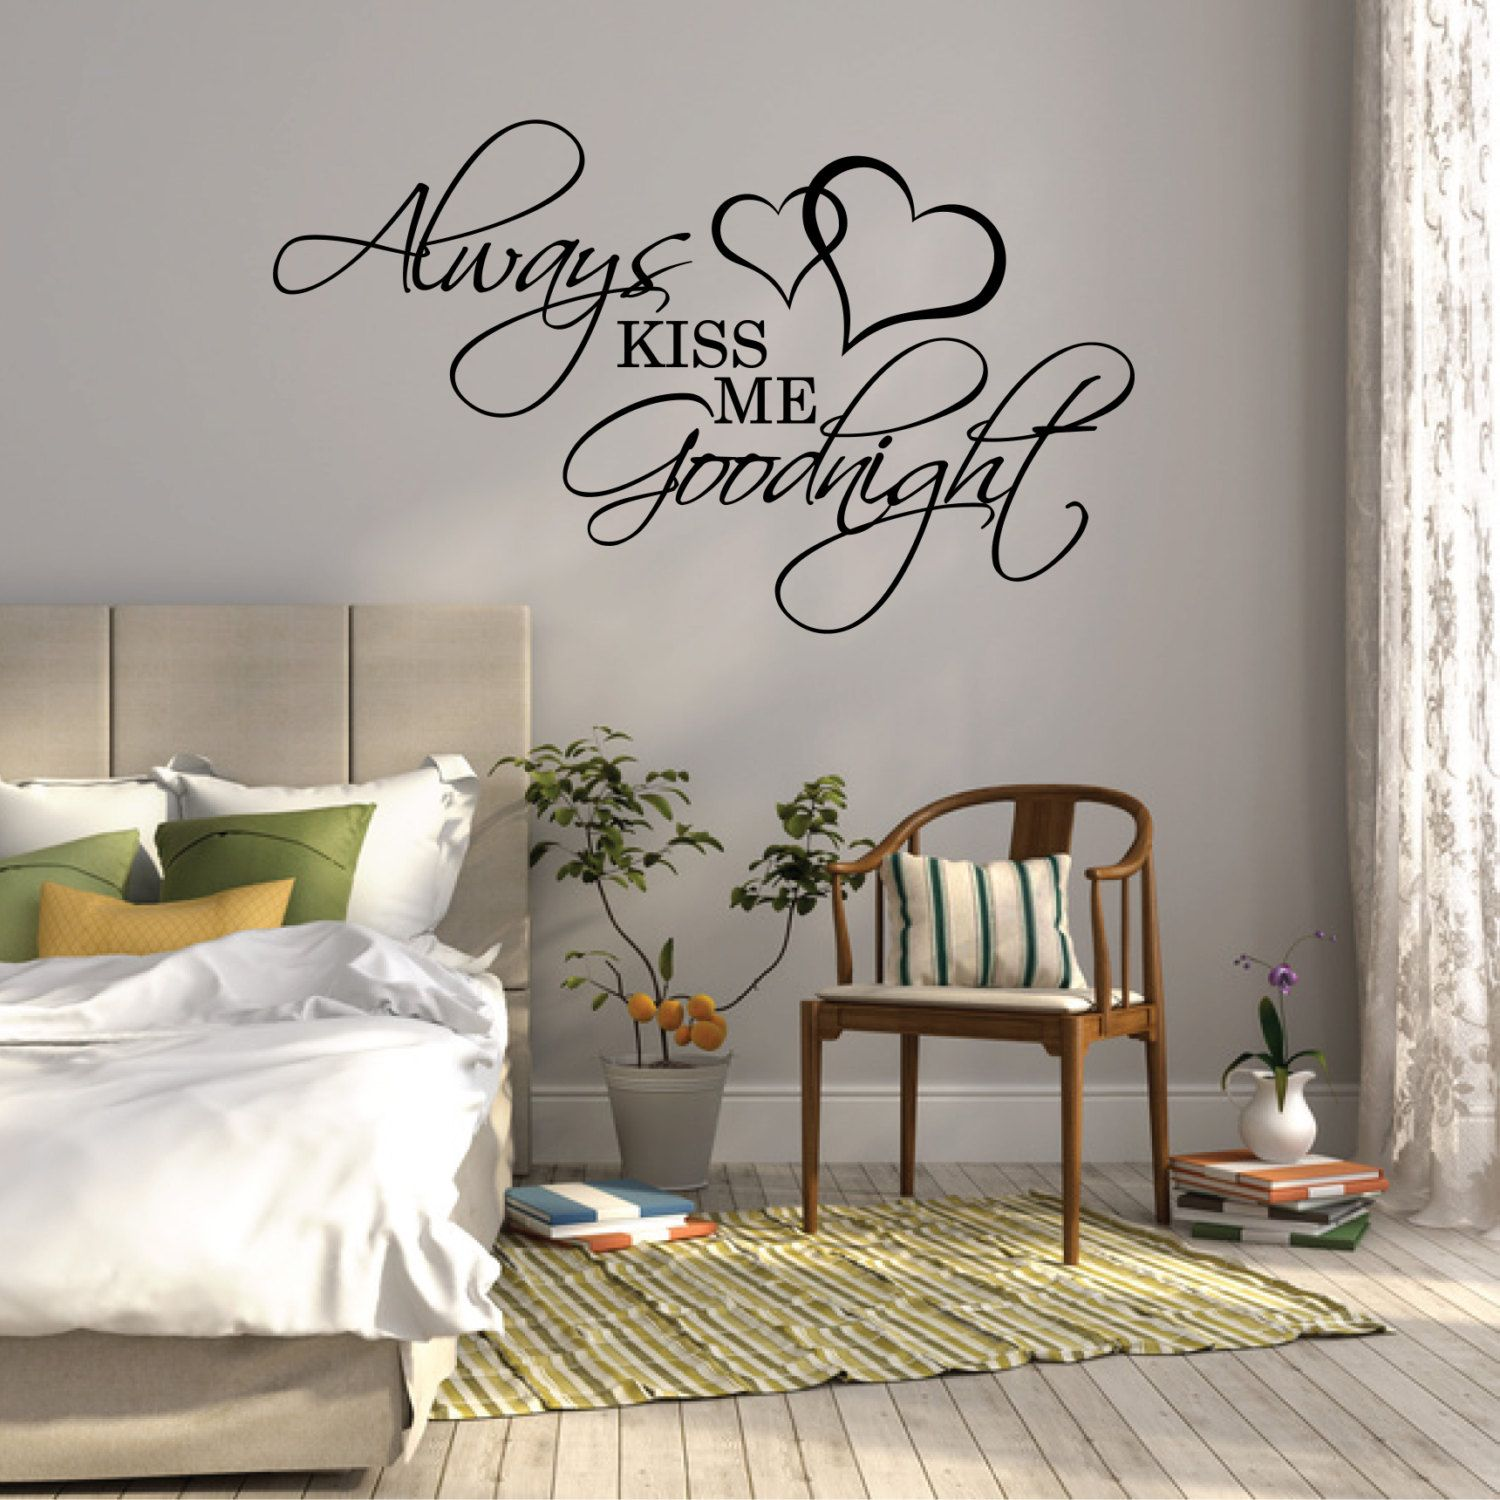 Wall Sticker Quote- Always KISS ME Goodnight | Over bed wall decor ...